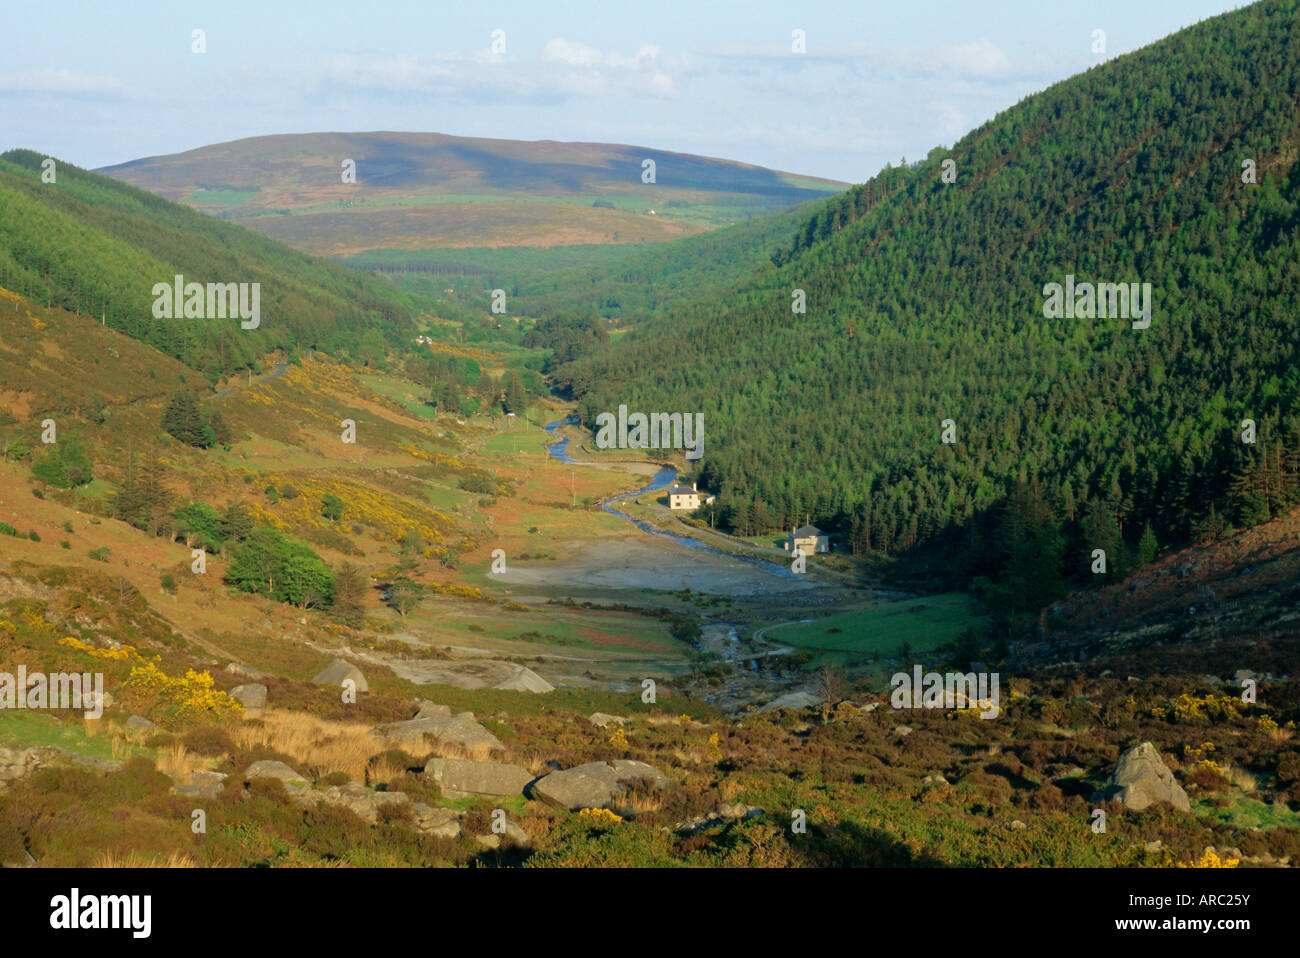 Ein Tal in der Nähe von Glendalough, Wicklow Mountains, County Wicklow, Leinster, Irland (Eire) Europa anzeigen Stockbild